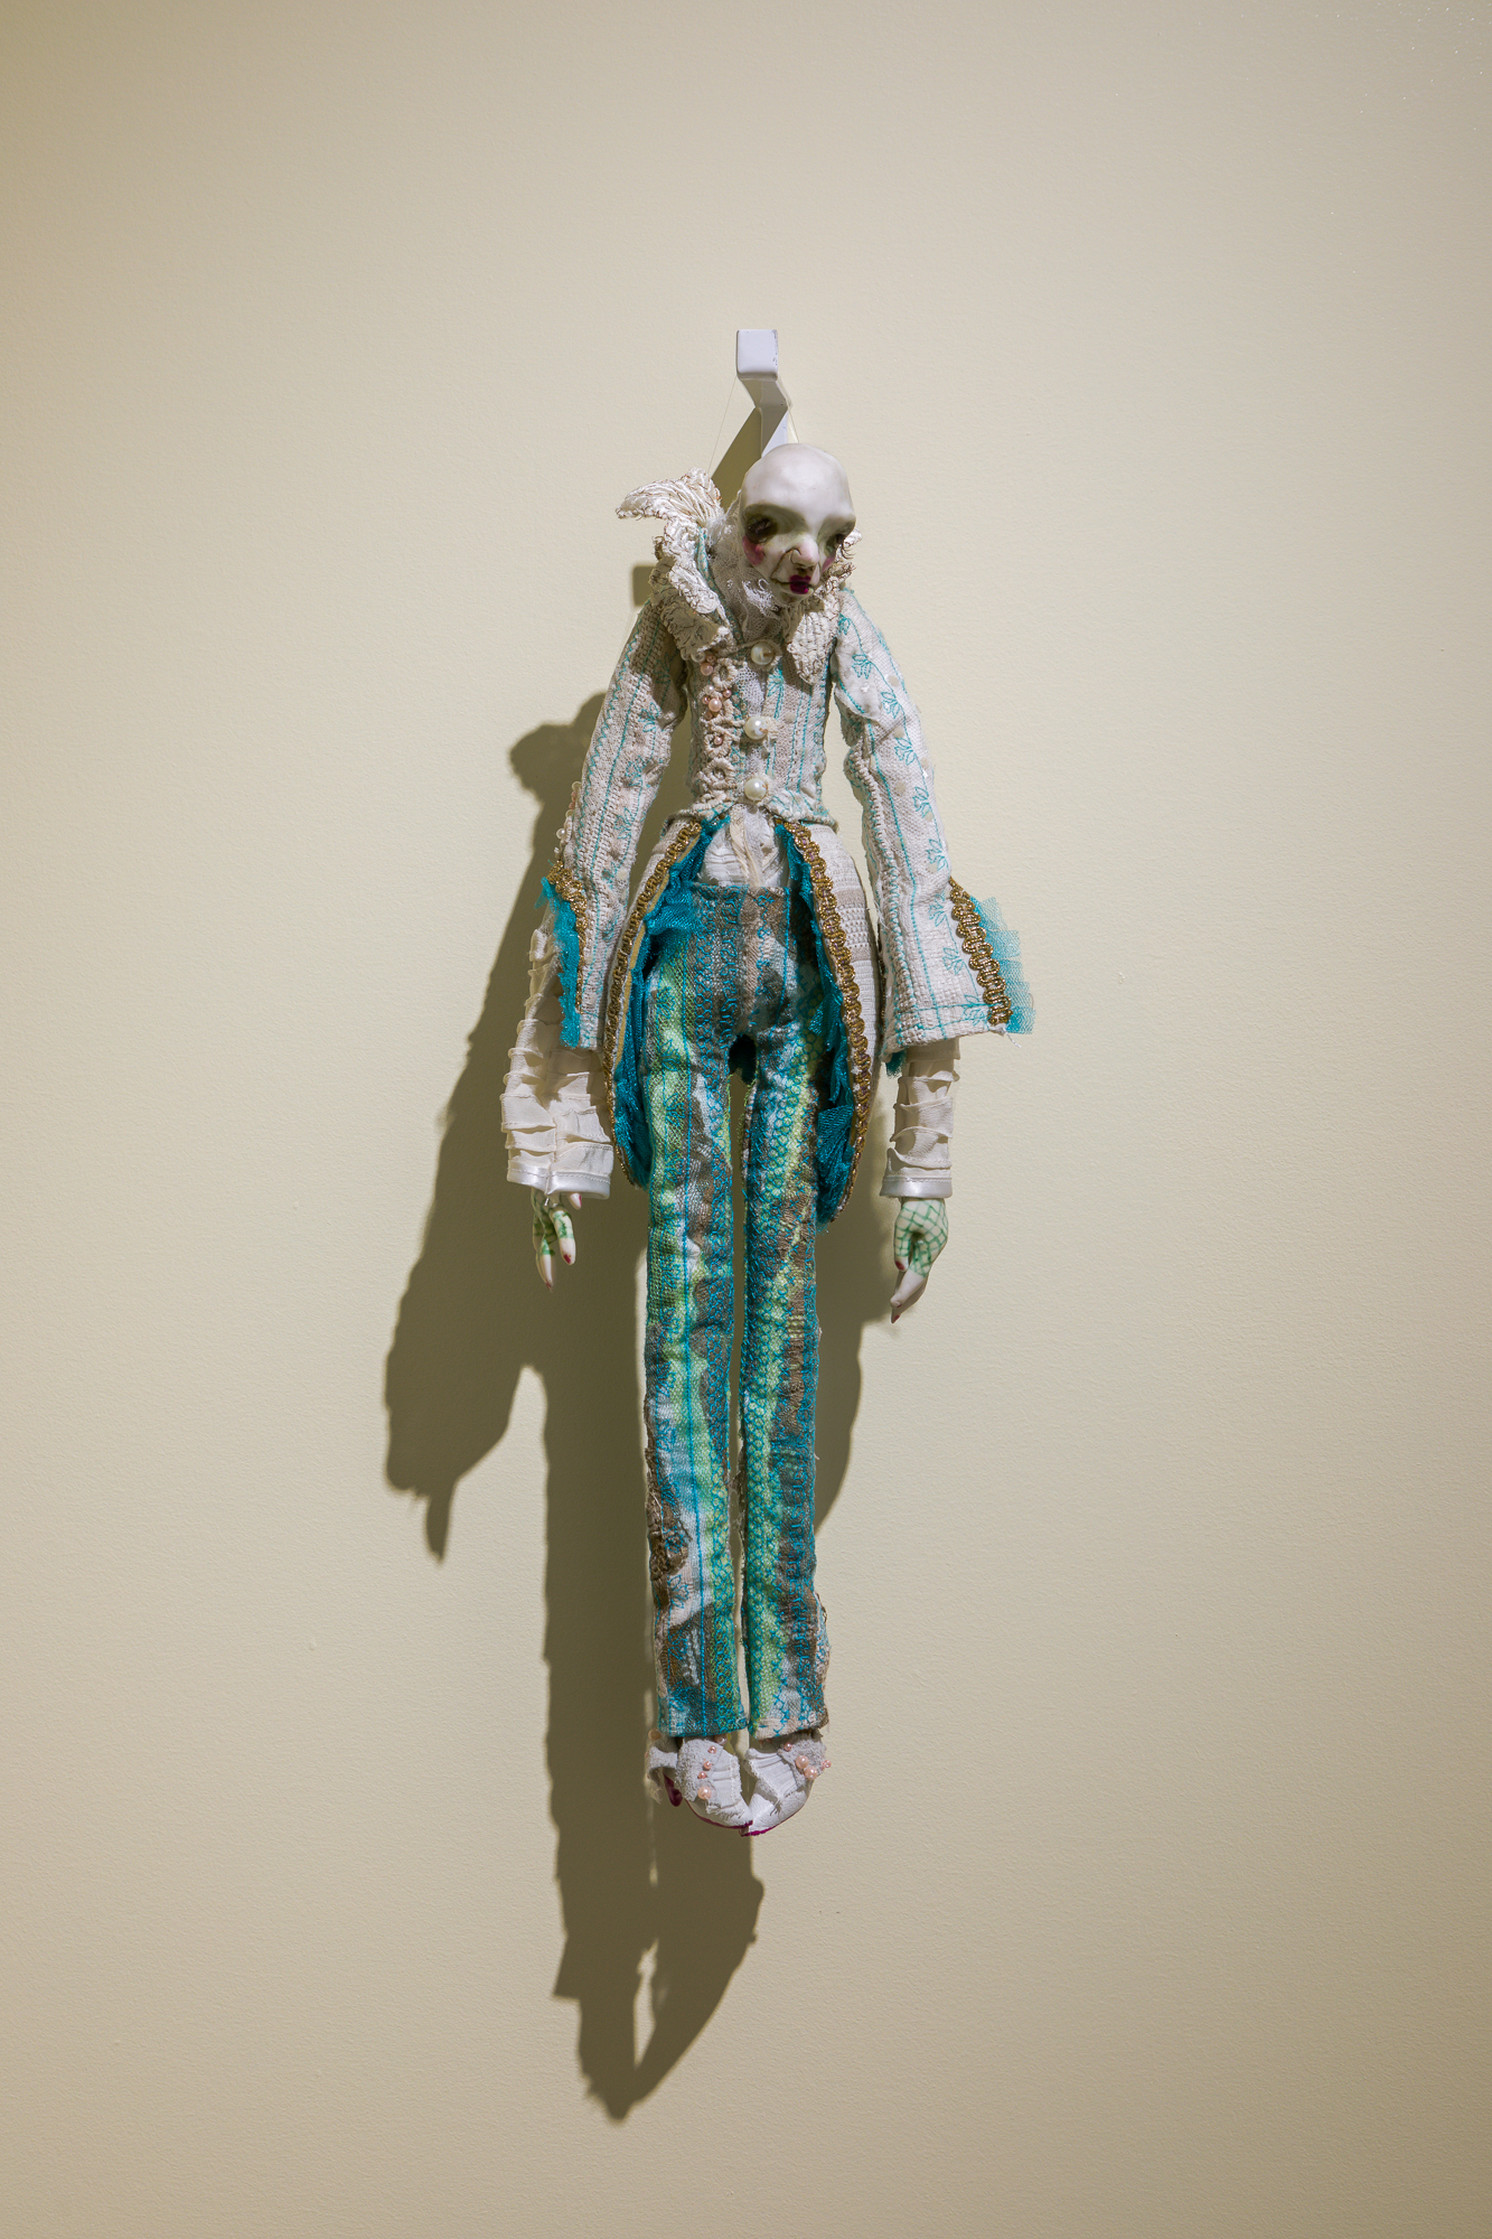 Marija Tavčar, Marquis, 2013. Polymer clay, cotton, silk, pleated fabric, lace, tulle, ribbons, real leather, beads, embroidered details. Courtesy of the artist.